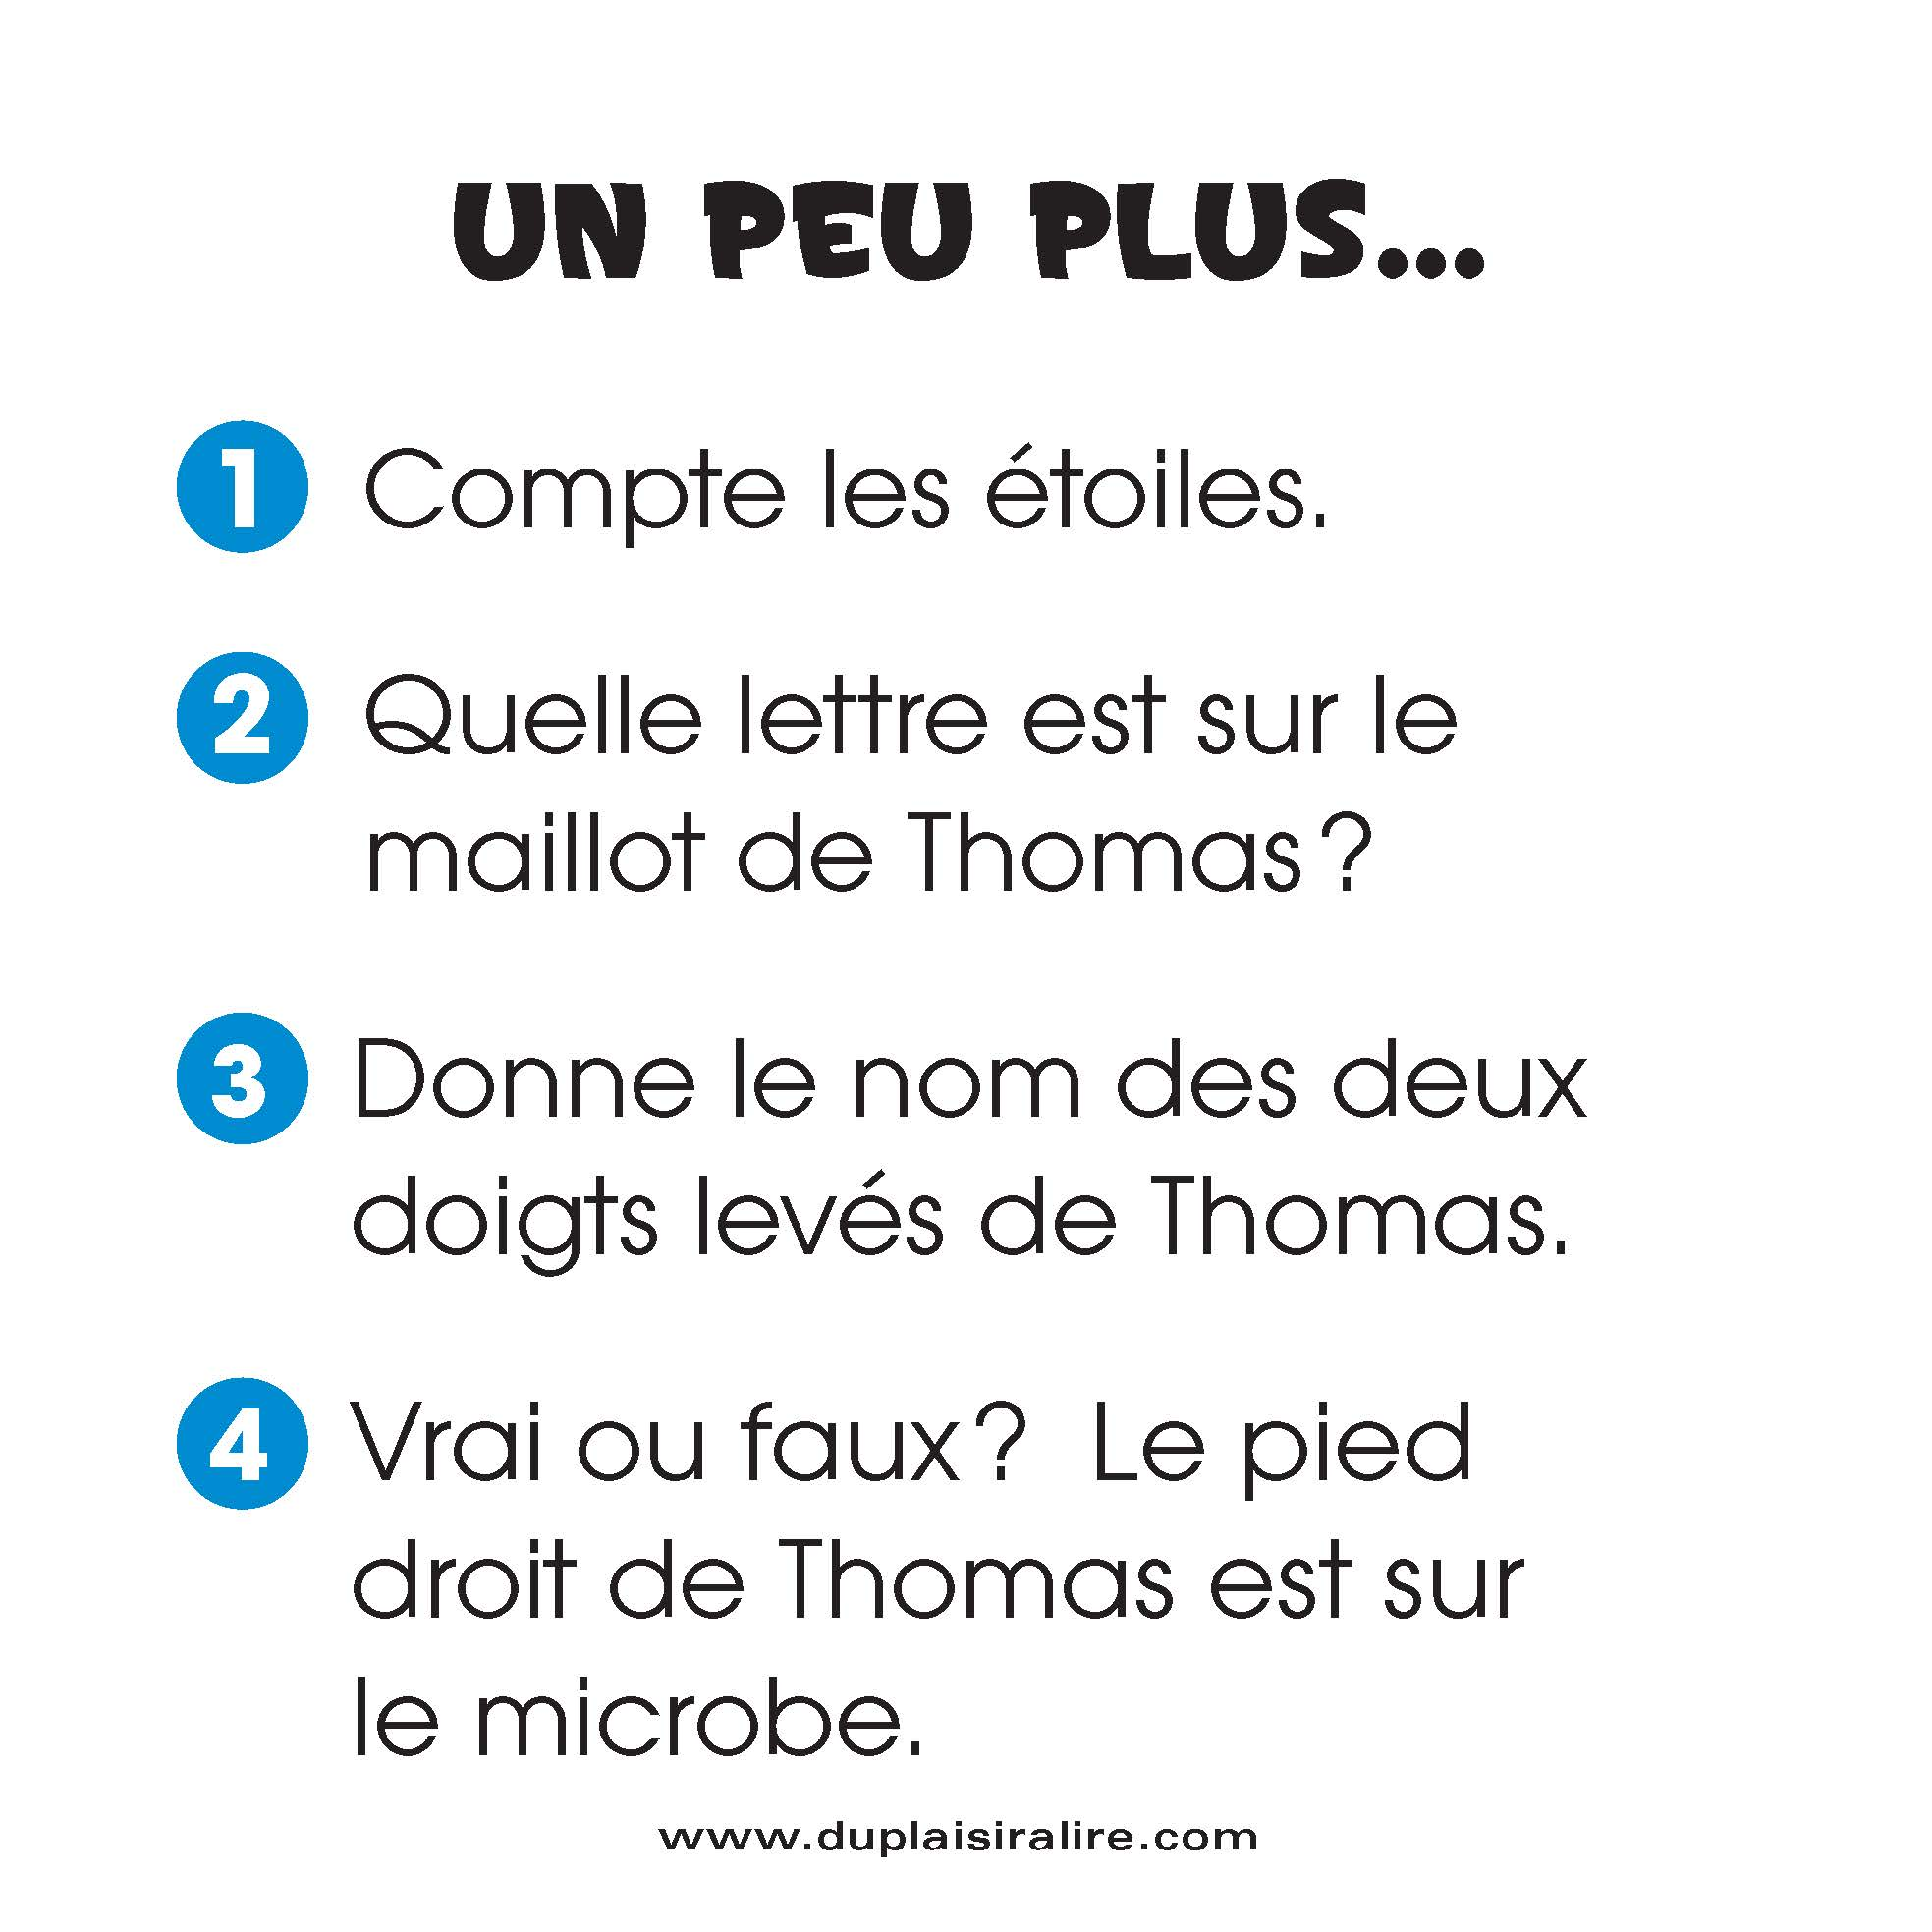 Les microbes